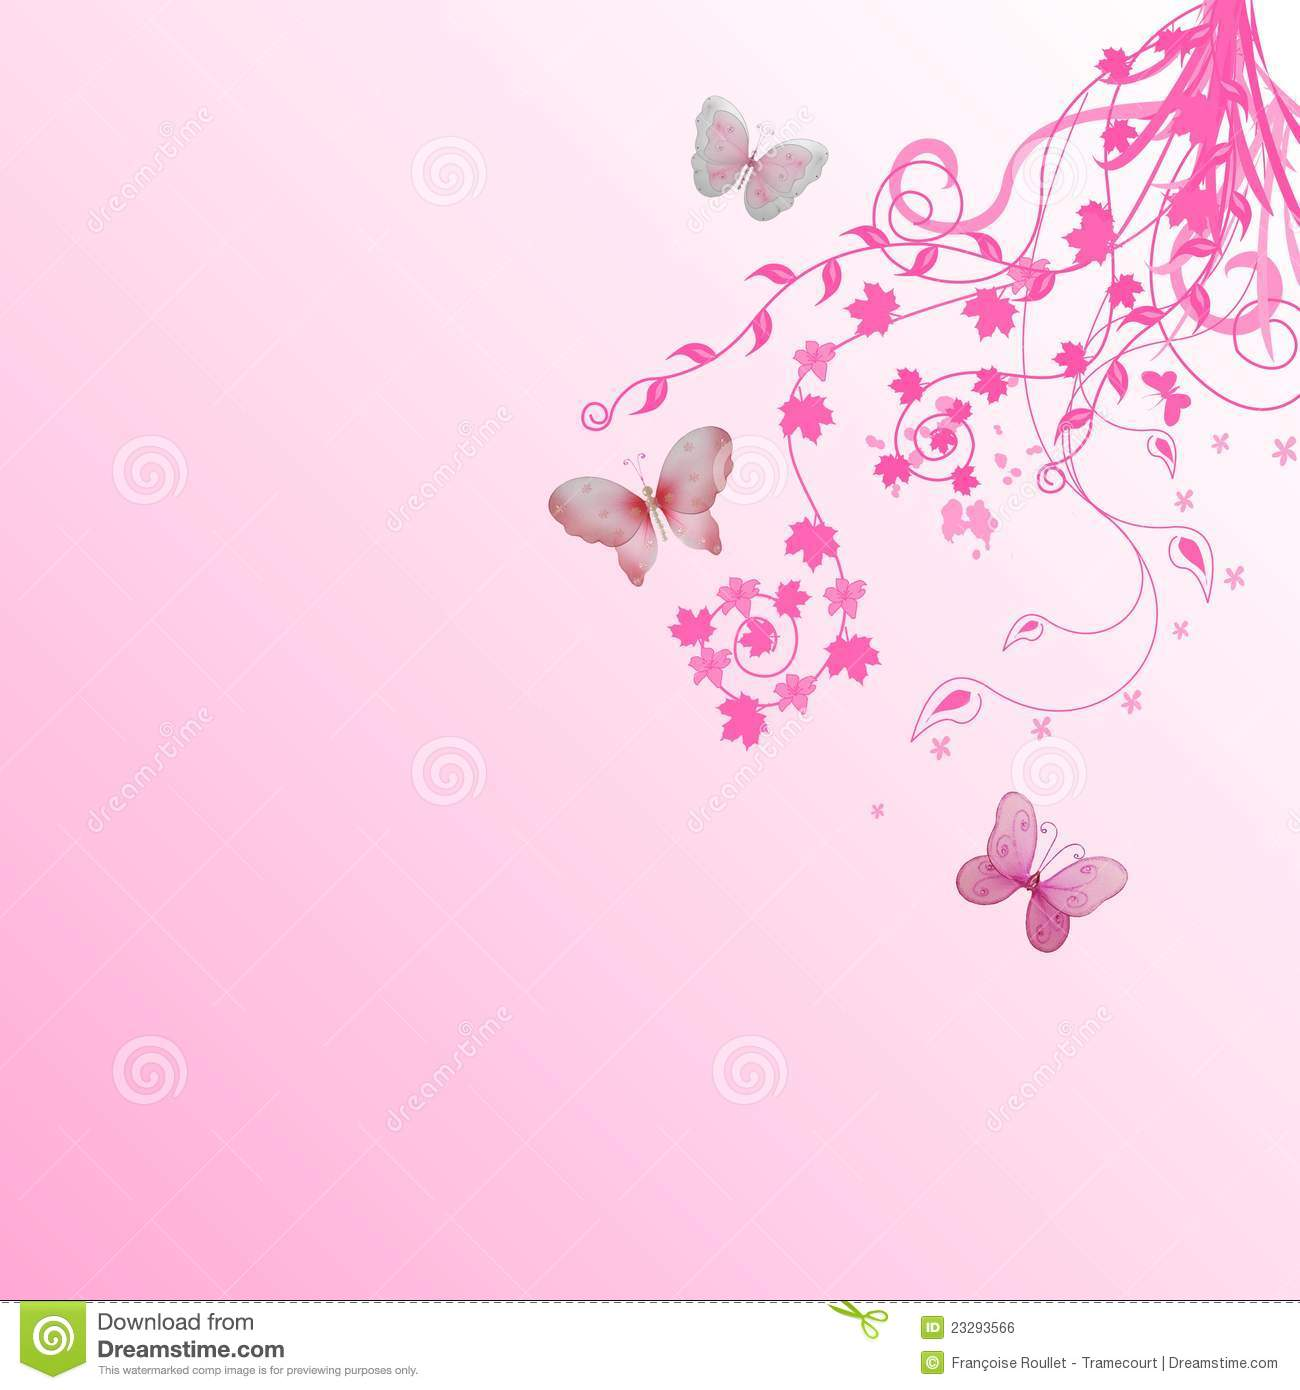 Bedroom Design Ideas For Women Pink Floral Butterflies Background Royalty Free Stock